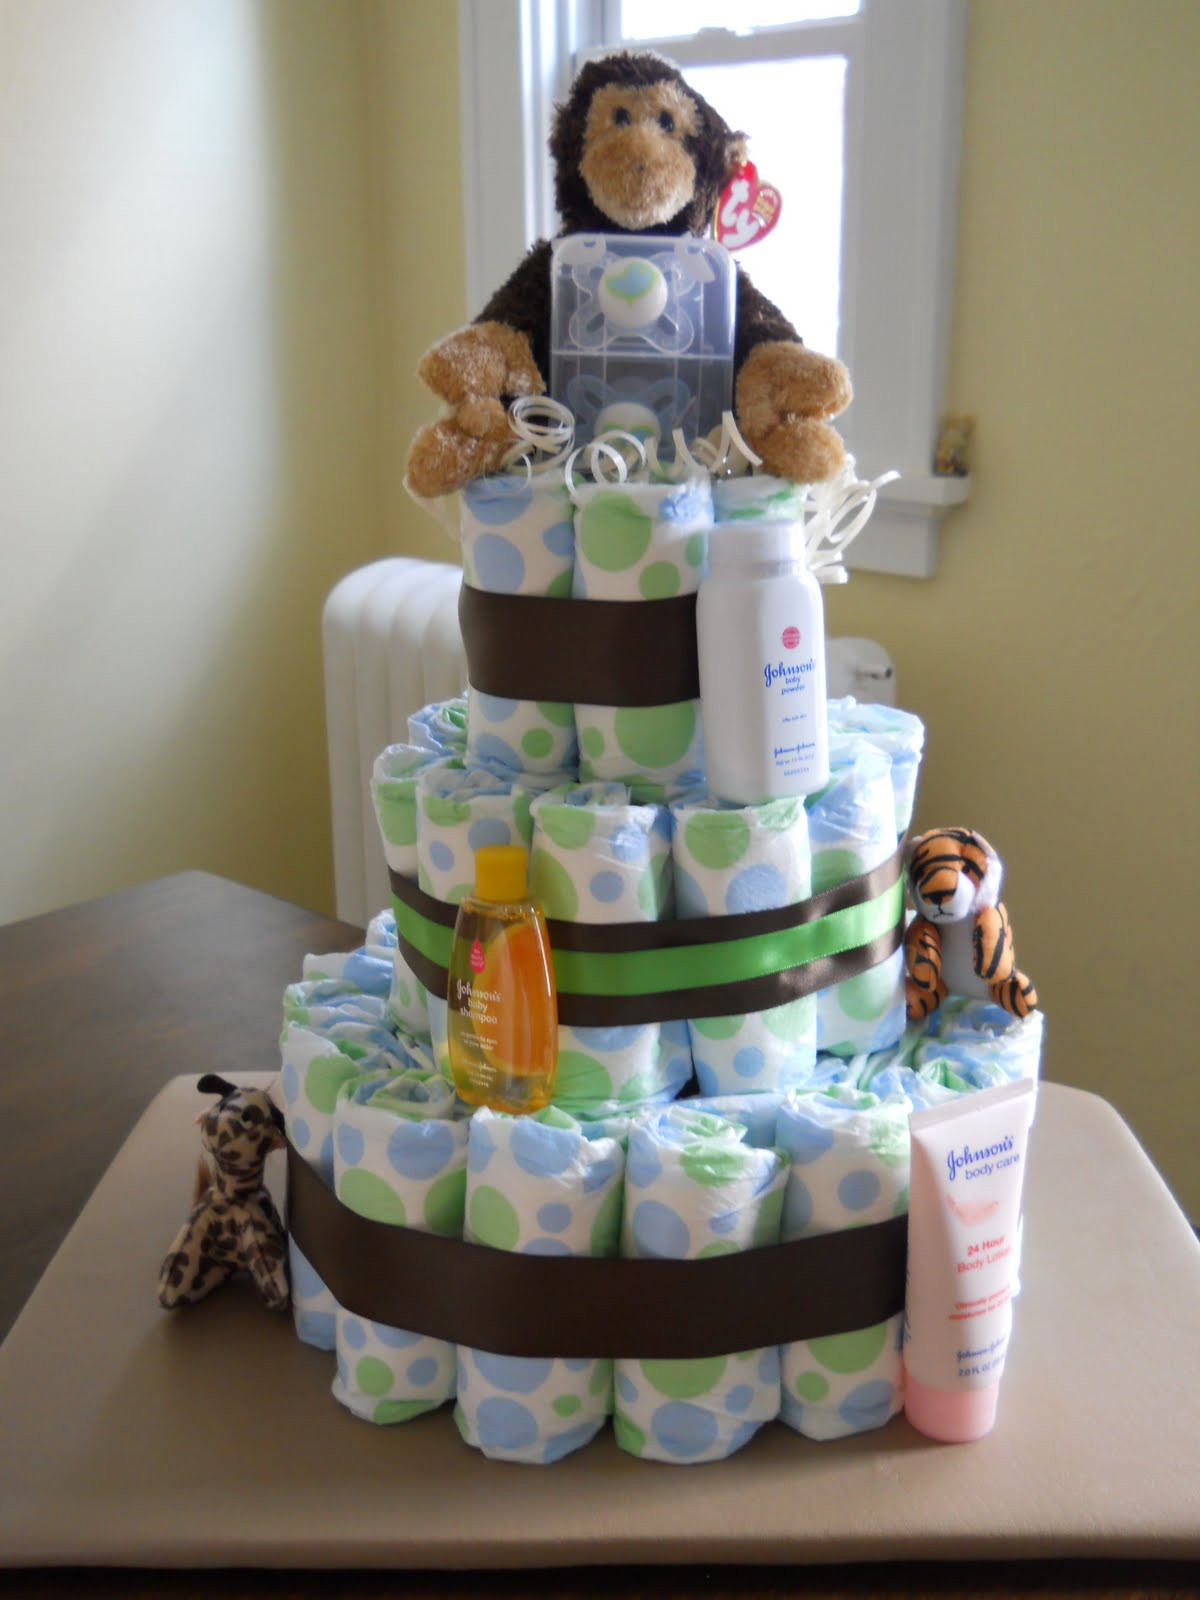 Best ideas about DIY Baby Shower Cakes . Save or Pin Be ing Mrs Juju DIY Diaper Cake Now.